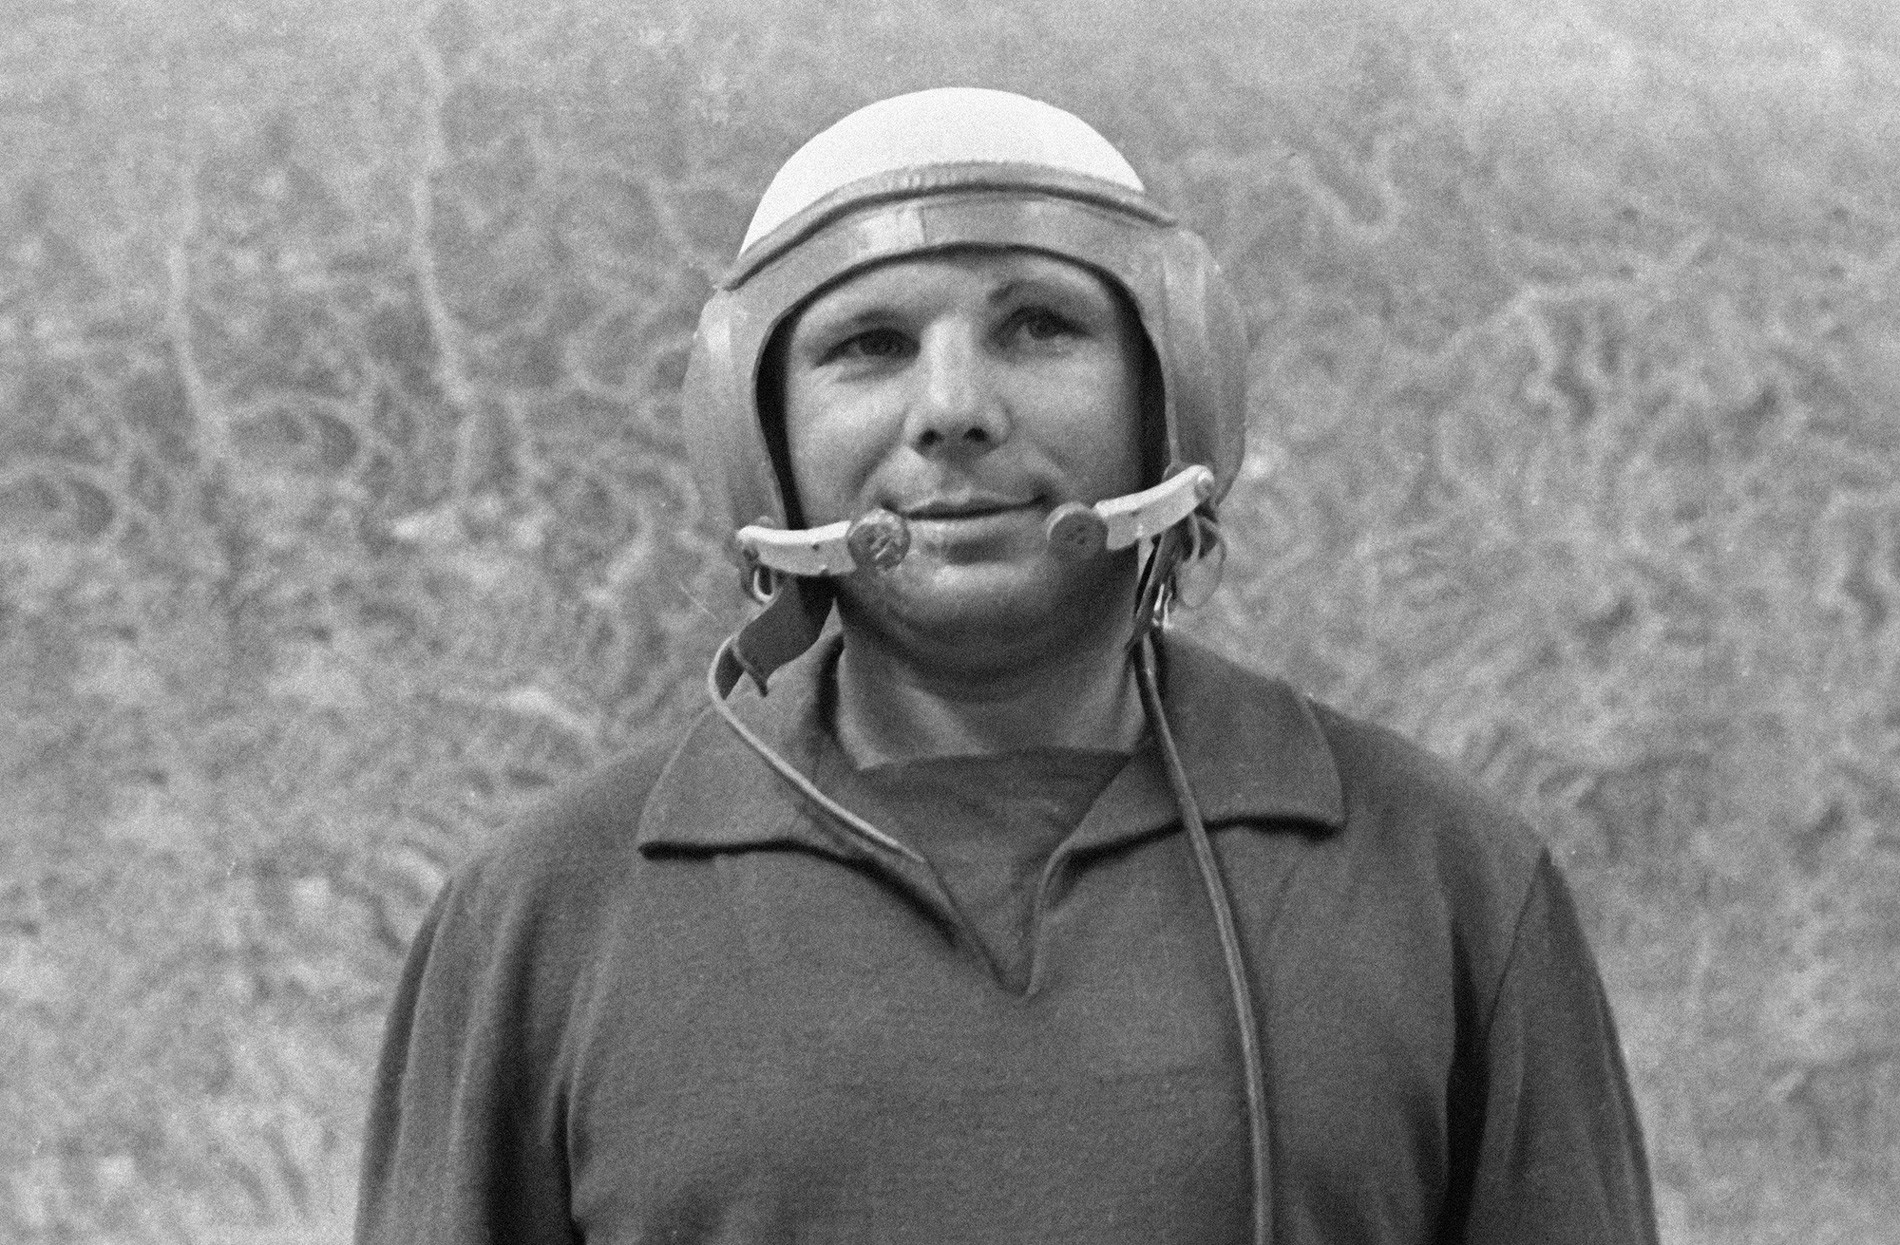 Gagarin was keen to fly to space again - but didn't survive one of the routine preparation flights.